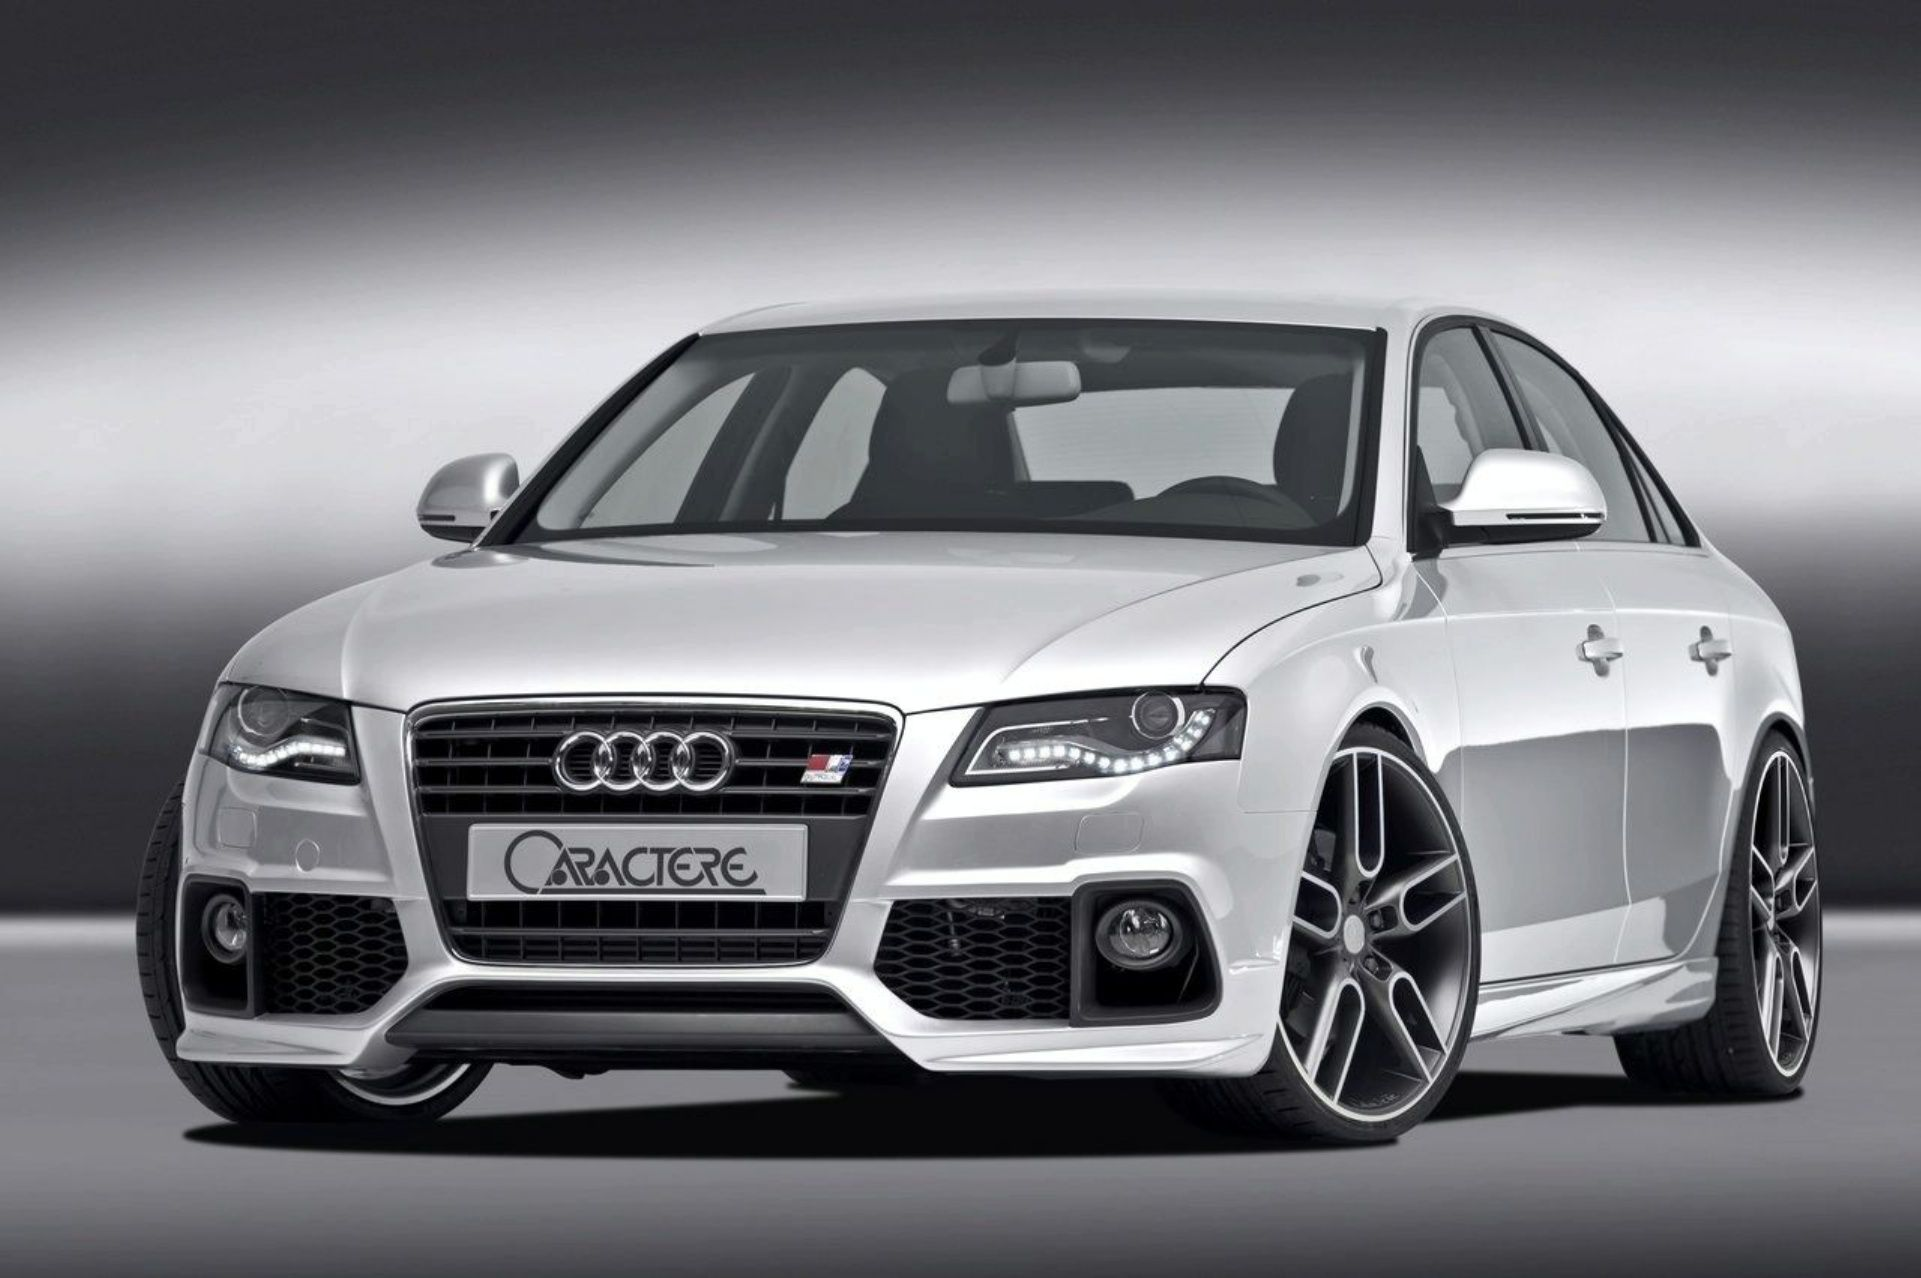 Audi A HD Wallpapers Get Free Top Quality Audi A HD Wallpapers - Audi car builder